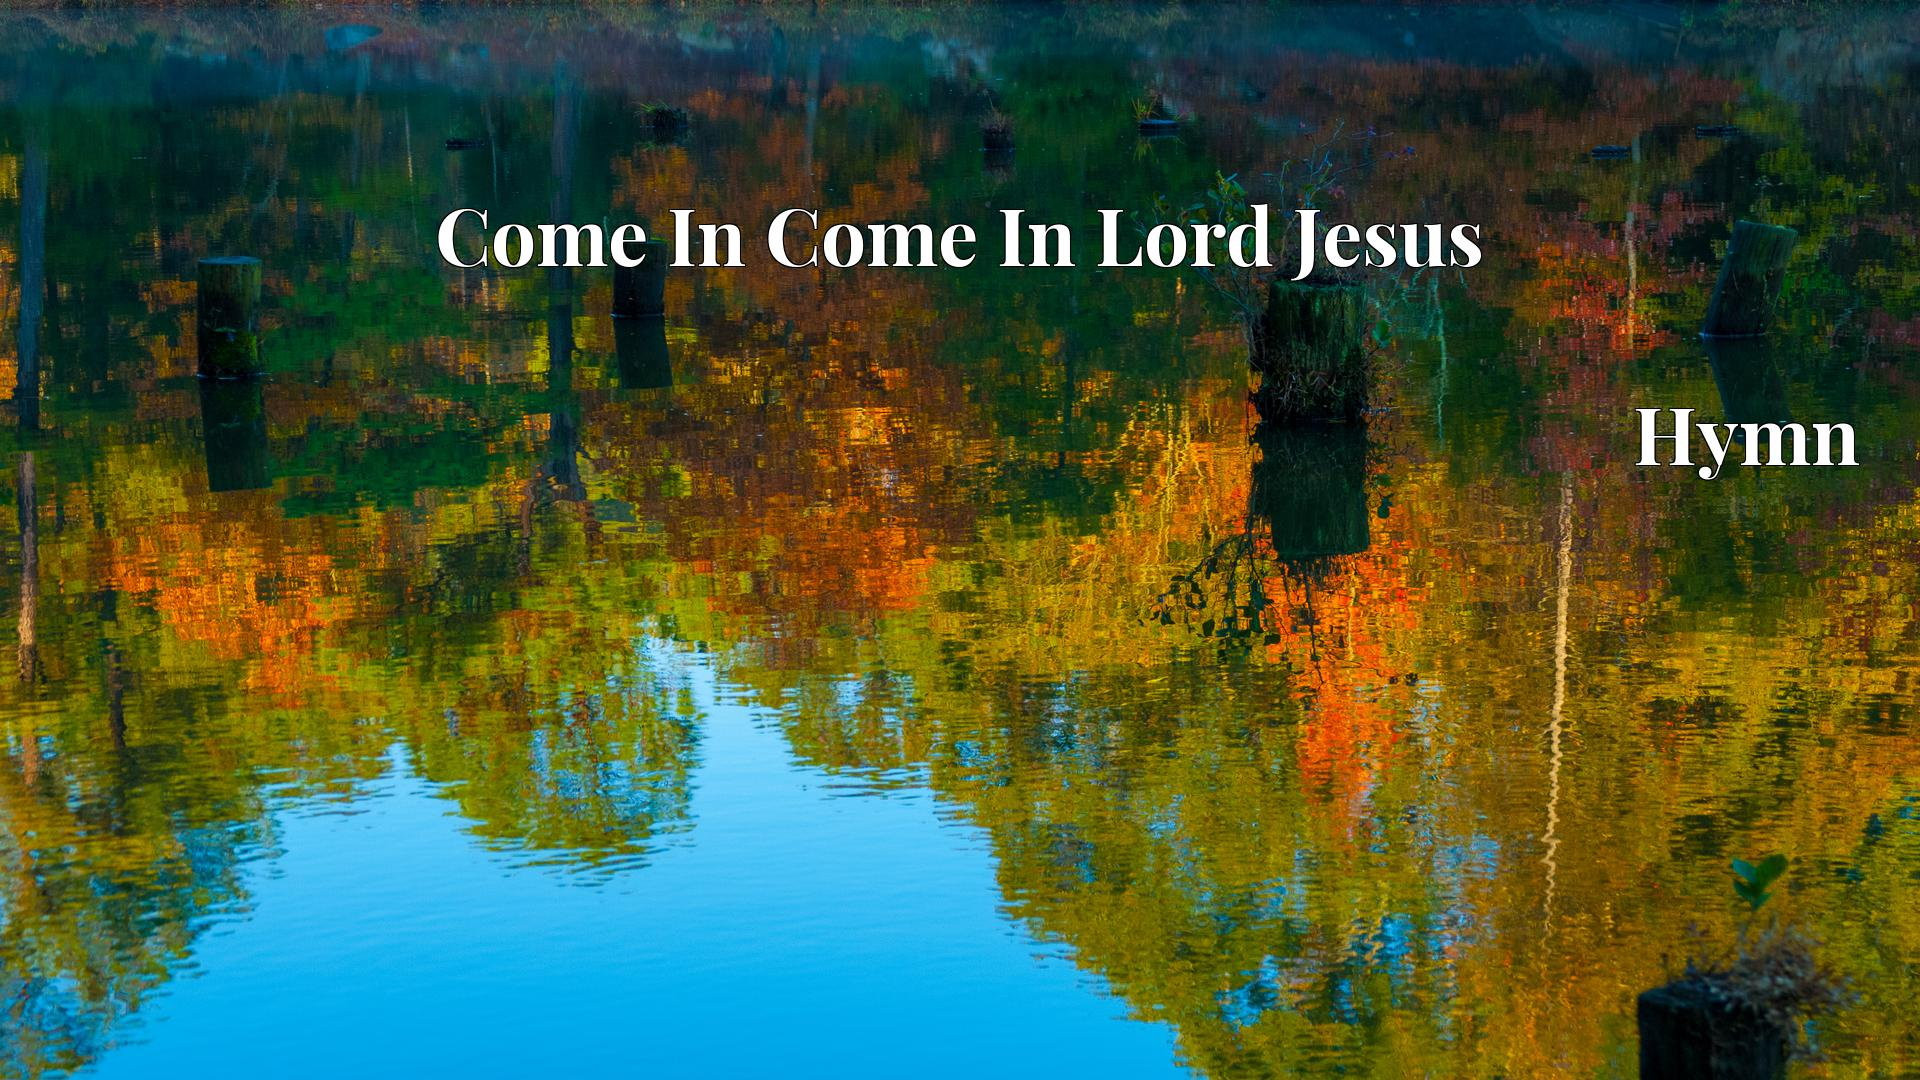 Come In Come In Lord Jesus - Hymn